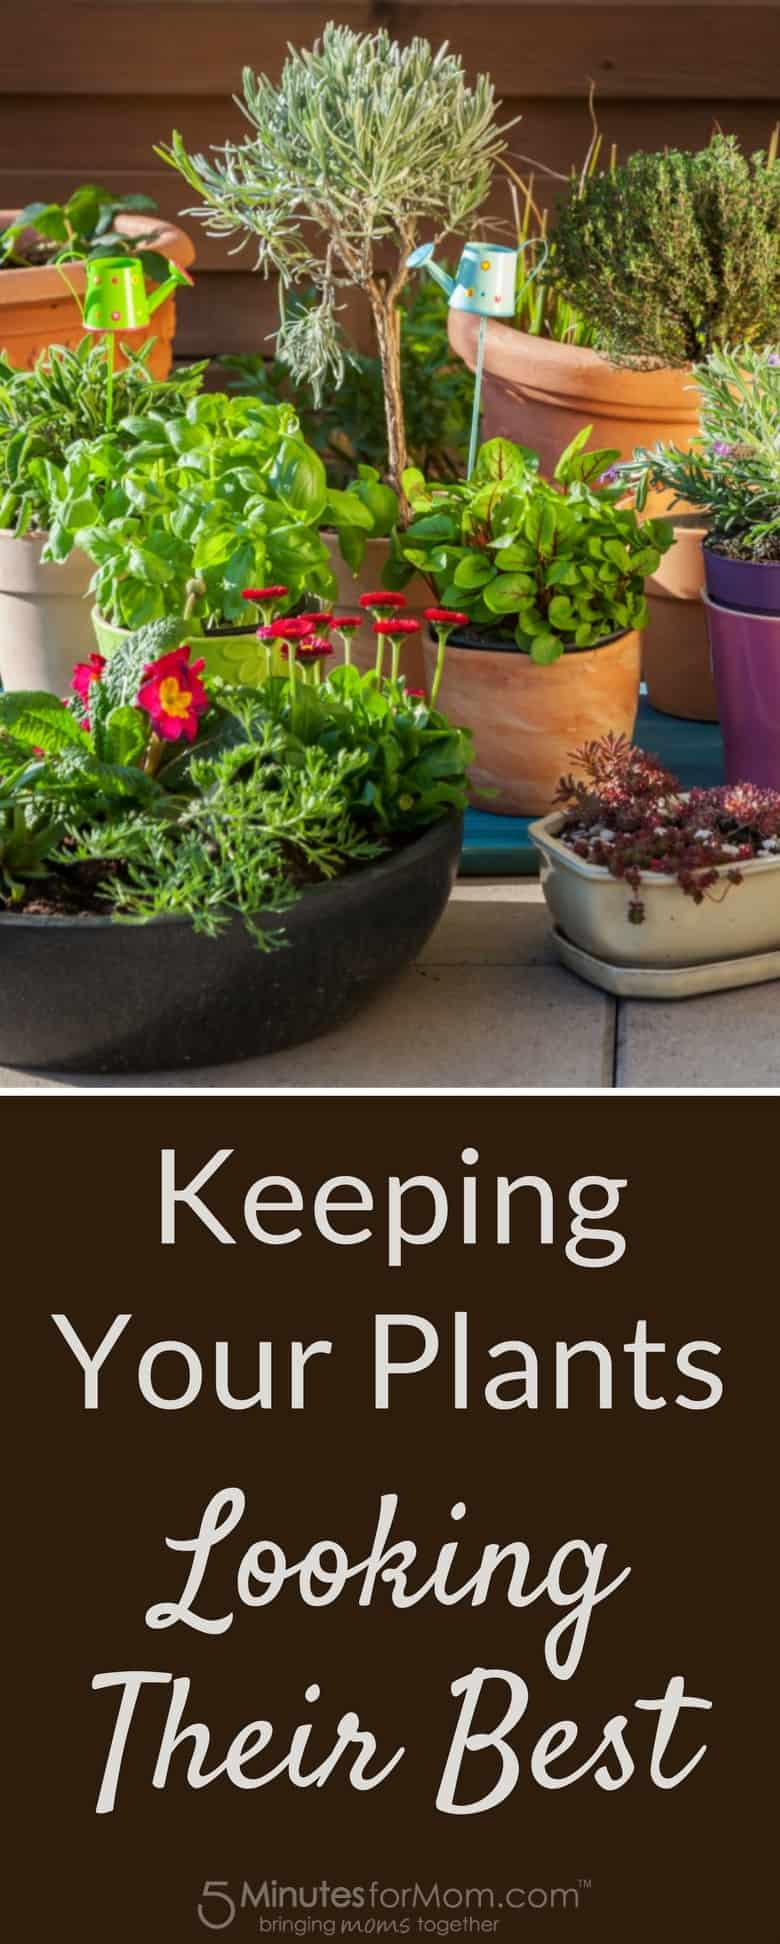 Container Gardening - Keeping Your Plants Looking Their Best